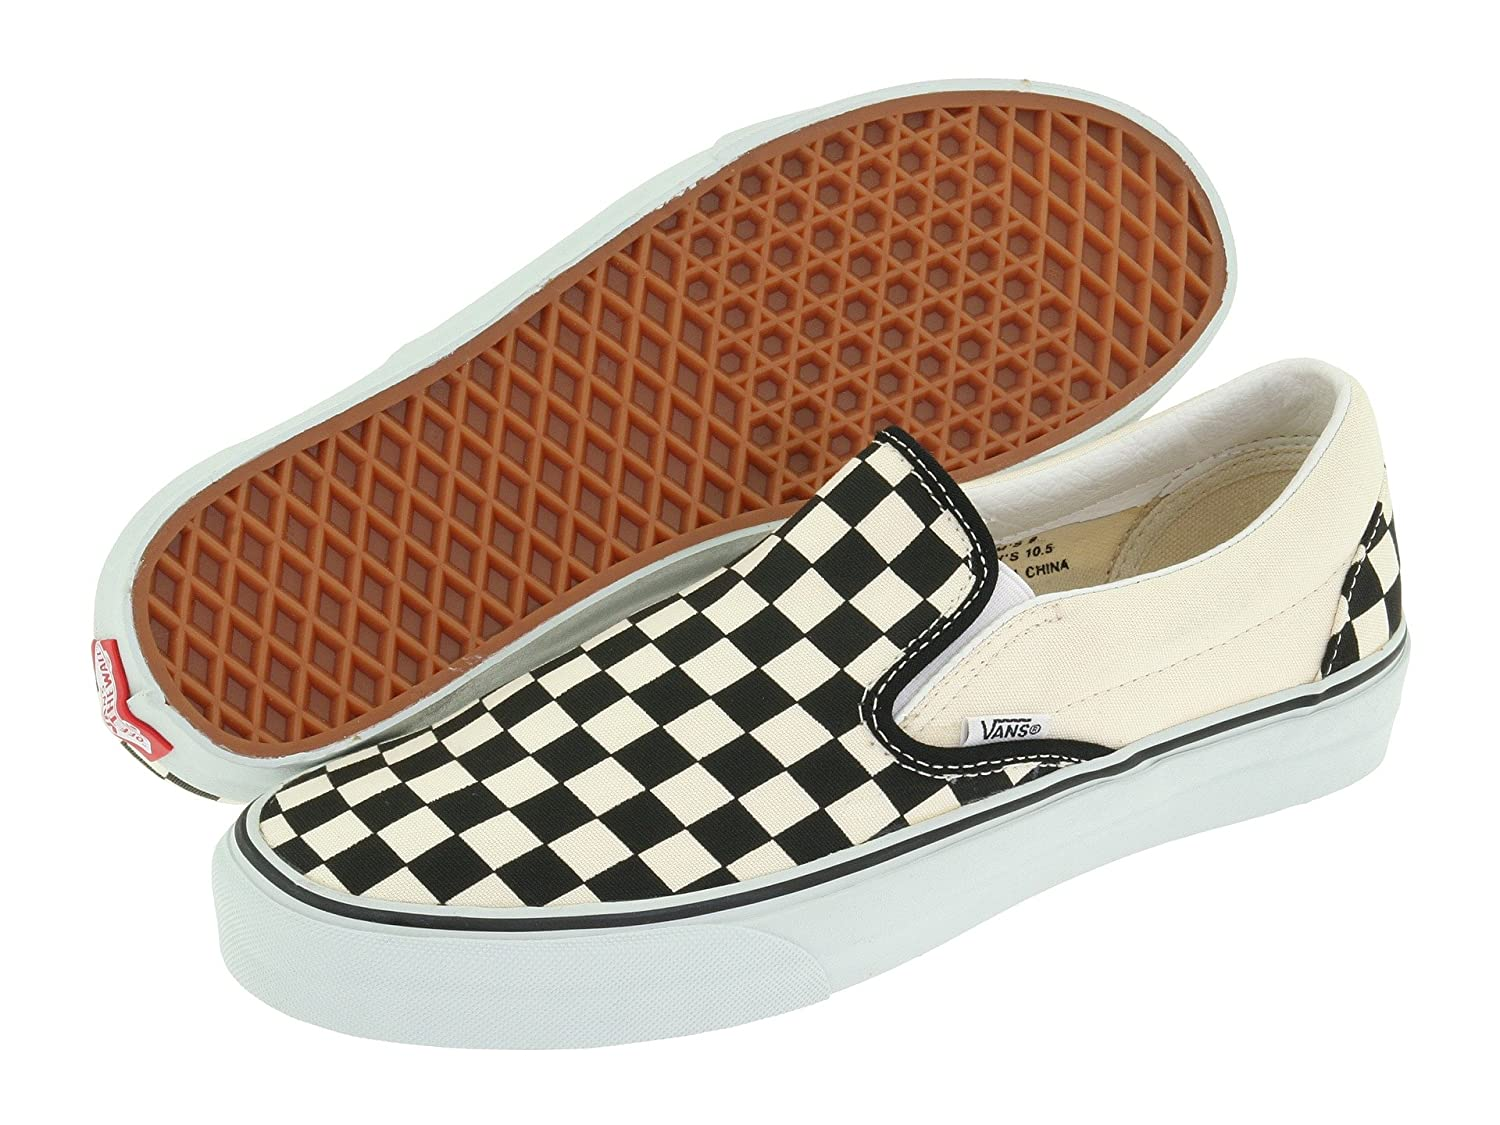 激安本物 [バンズ] スニーカー Women's AUTHENTIC (Pig Suede) VN0A38EMU5O レディース VN0A38EMU5O B0753ZLBJZ Checkerboard White 5.5 B(M) US Women/ 4 D(M) US Men|Black Off White Checkerboard Black Off White Checkerboard 5.5 B(M) US Women/ 4 D(M) US Men, Big Apple:b4361c68 --- svecha37.ru